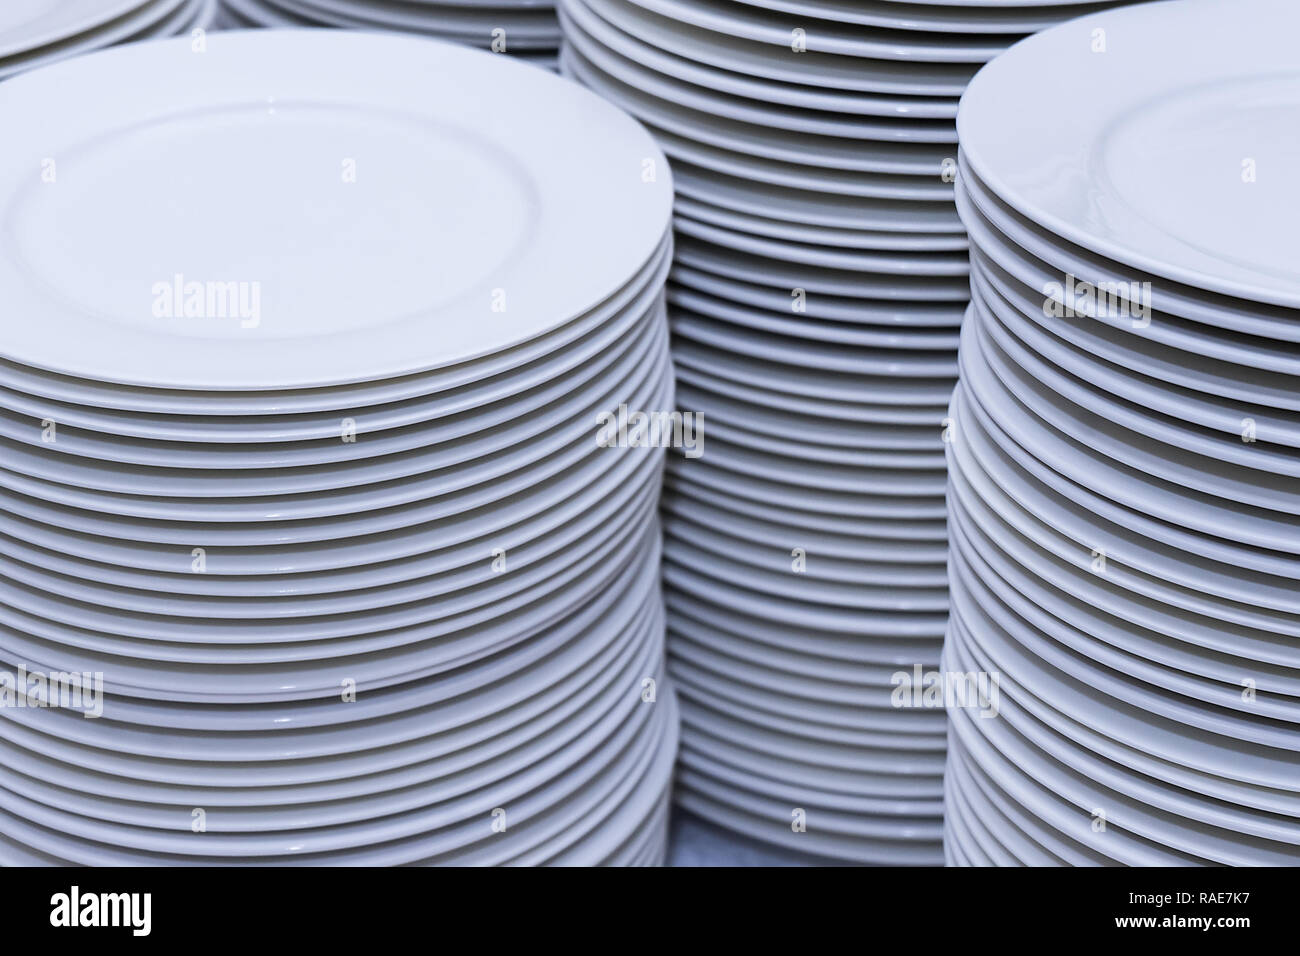 large stacks of clean white plates after washing in the kitchen - Stock Image